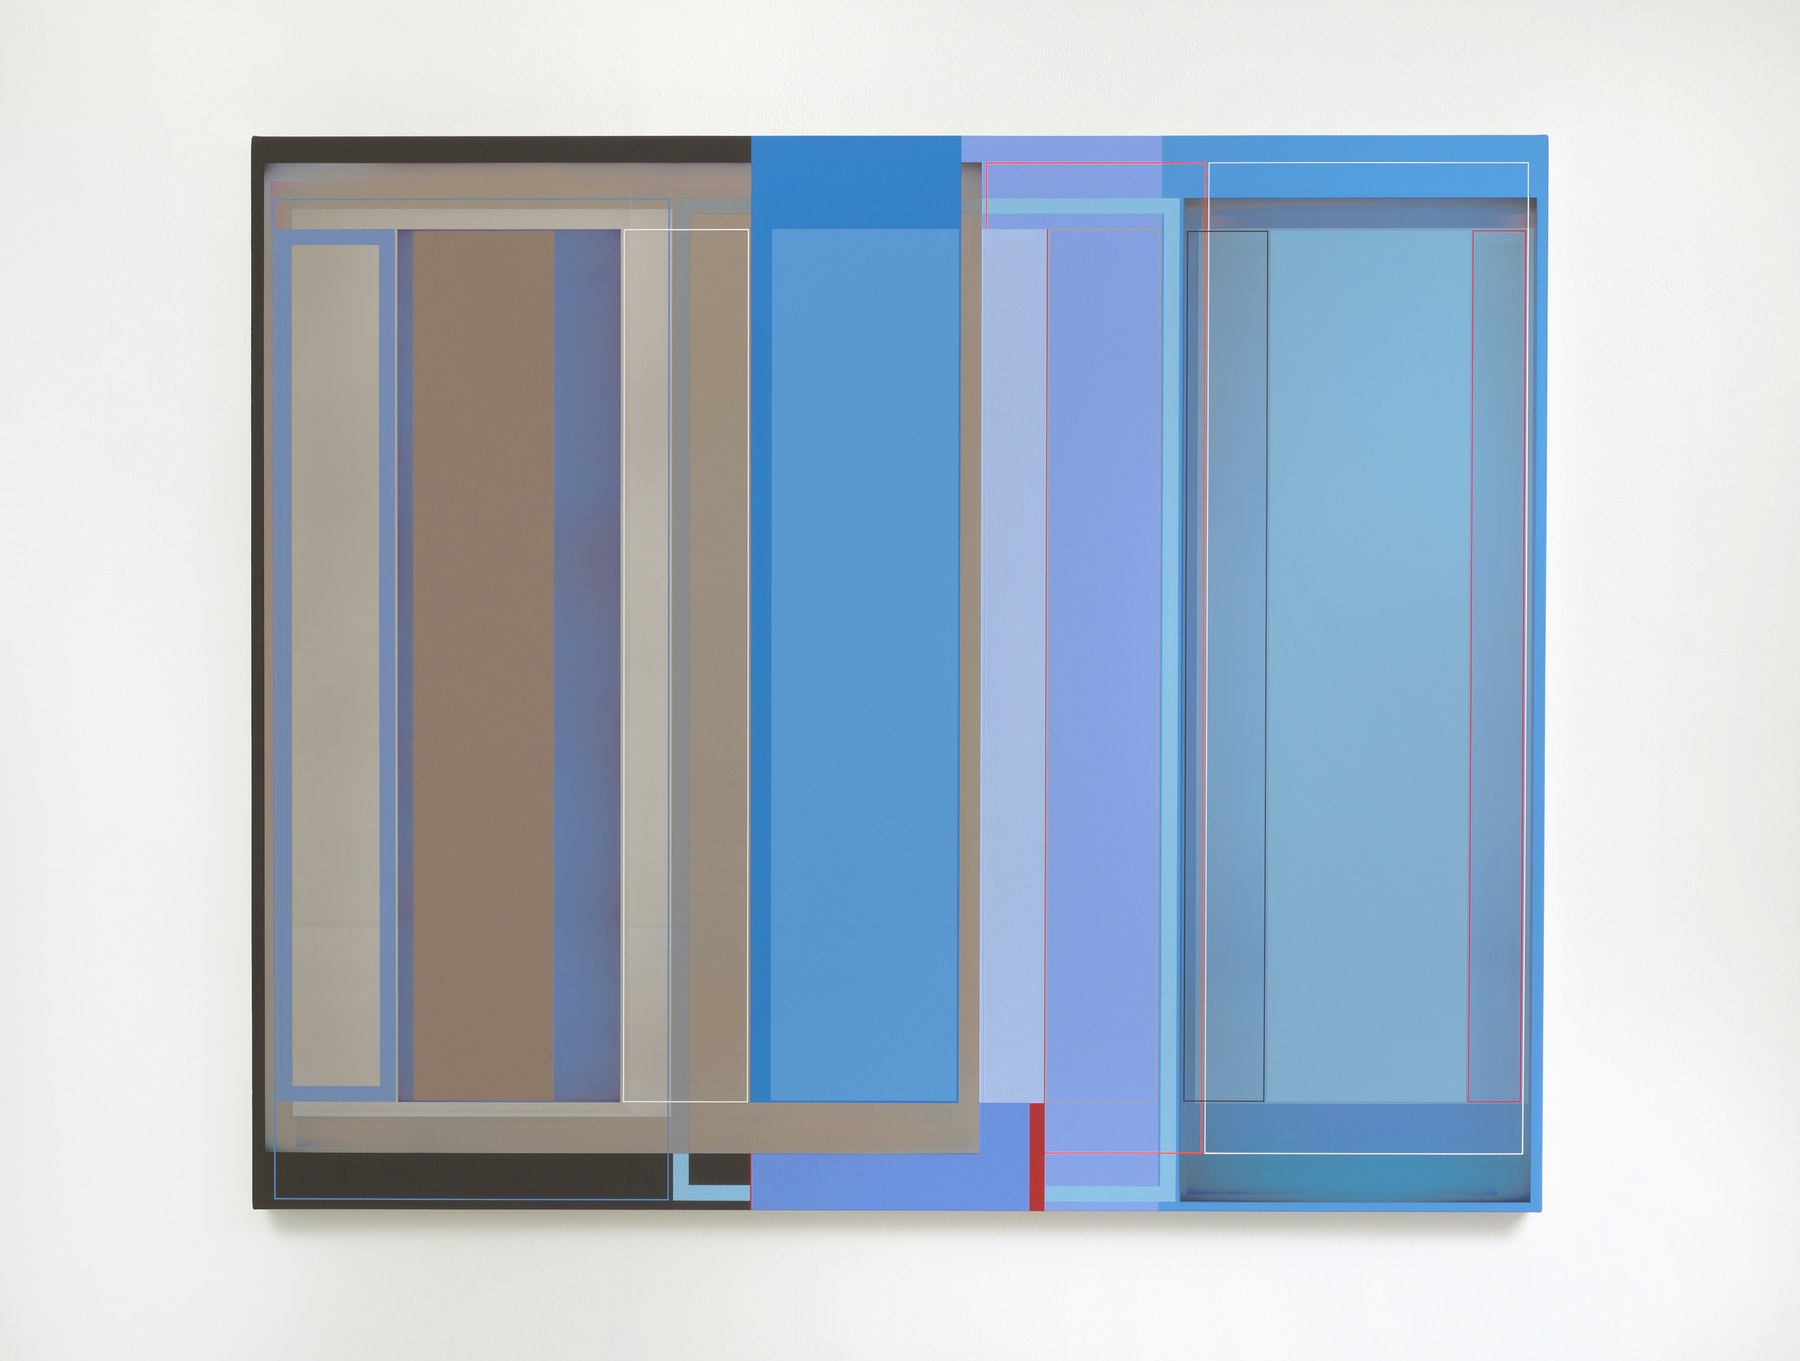 "Patrick Wilson ""Time and Place,"" 2020 Acrylic on canvas 49 x 59"" [HxW] (124.46 x 149.86 cm) Inventory #WIL568 Courtesy of the artist and Vielmetter Los Angeles Photo credit: Robert Wedemeyer"